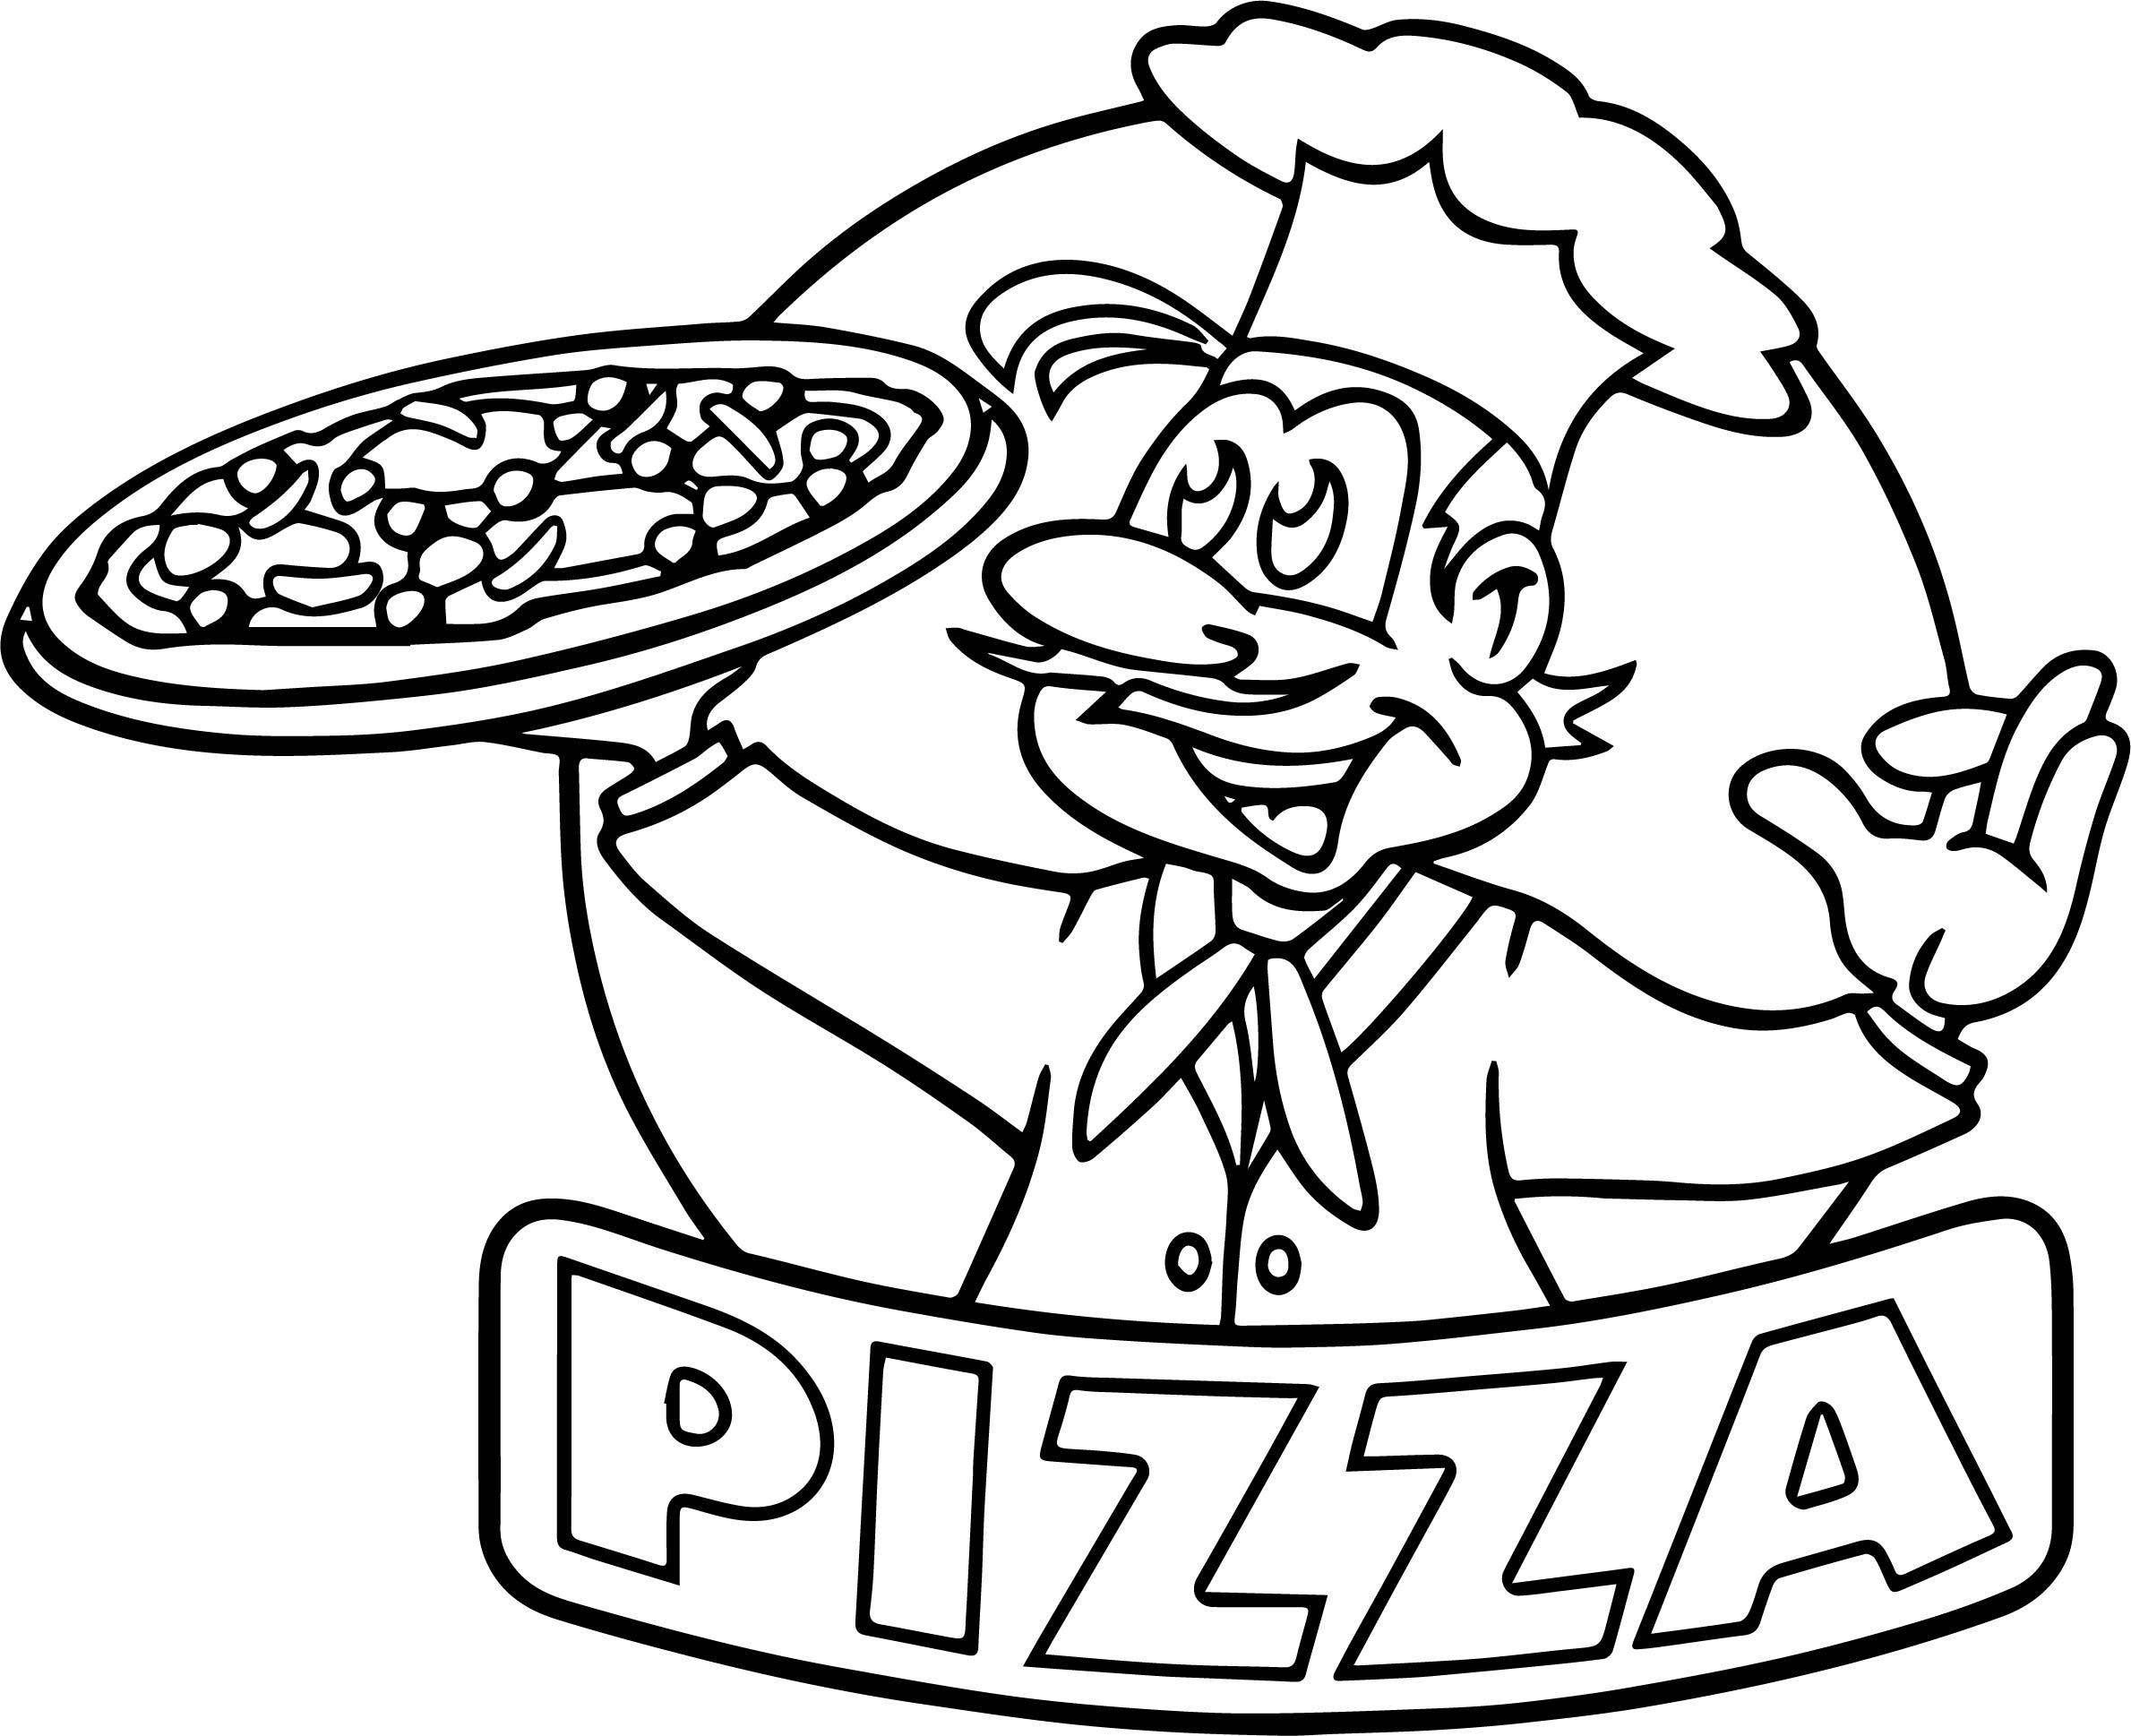 2379x1938 Cartoon Picture Of Pizza Coloring Page To Pages